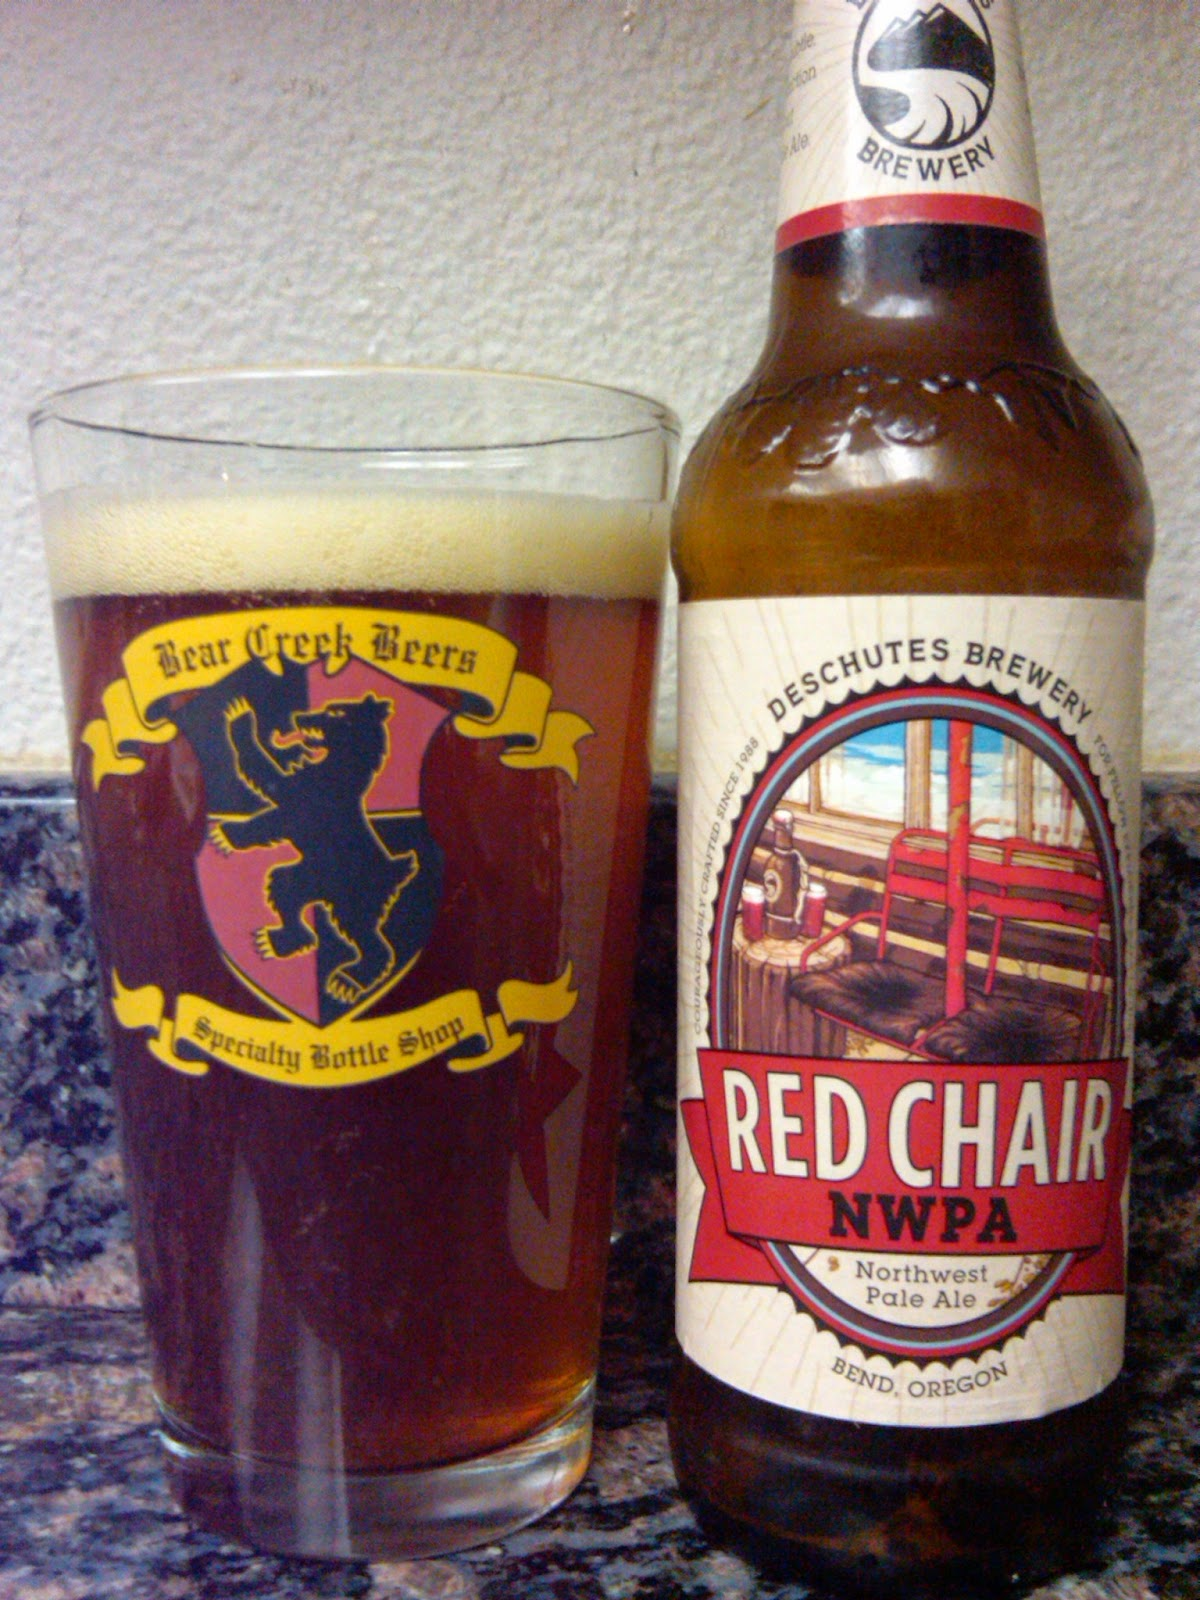 deschutes red chair cushions for wrought iron patio chairs 365 days of beer brewing northwest